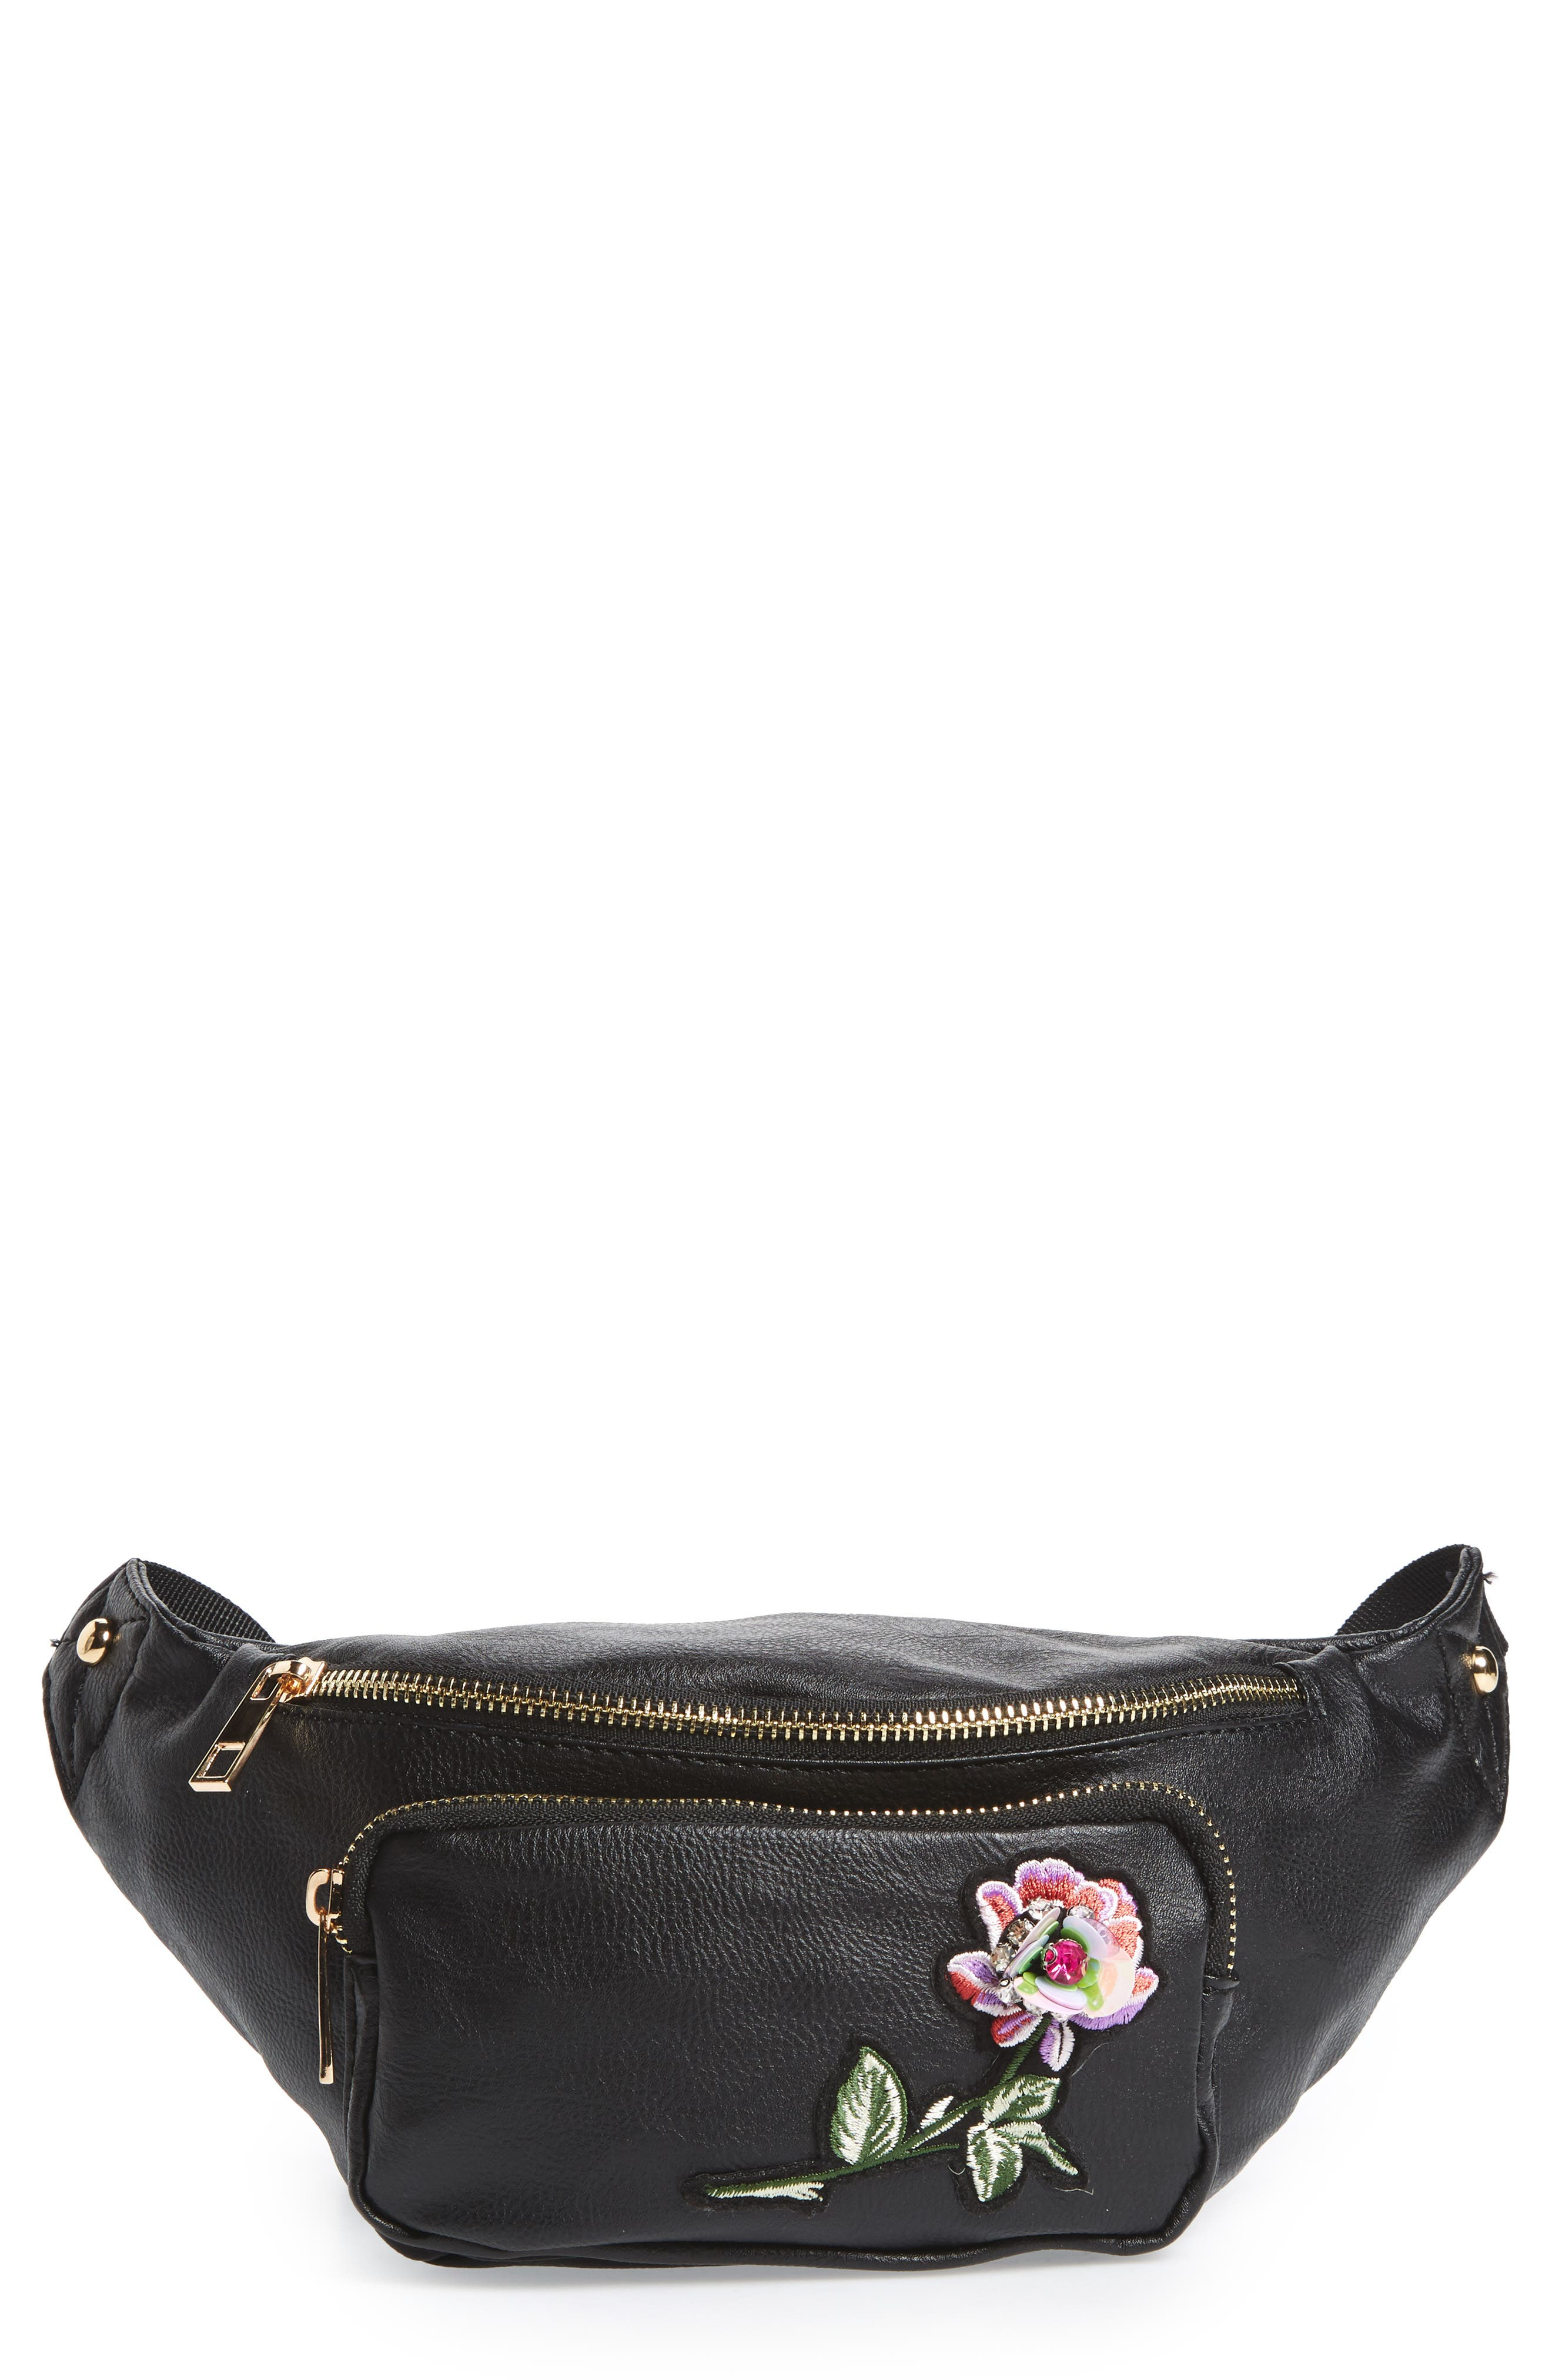 Alternate Image 1 Selected - OMG Embroidered Faux Leather Fanny Pack (Girls)